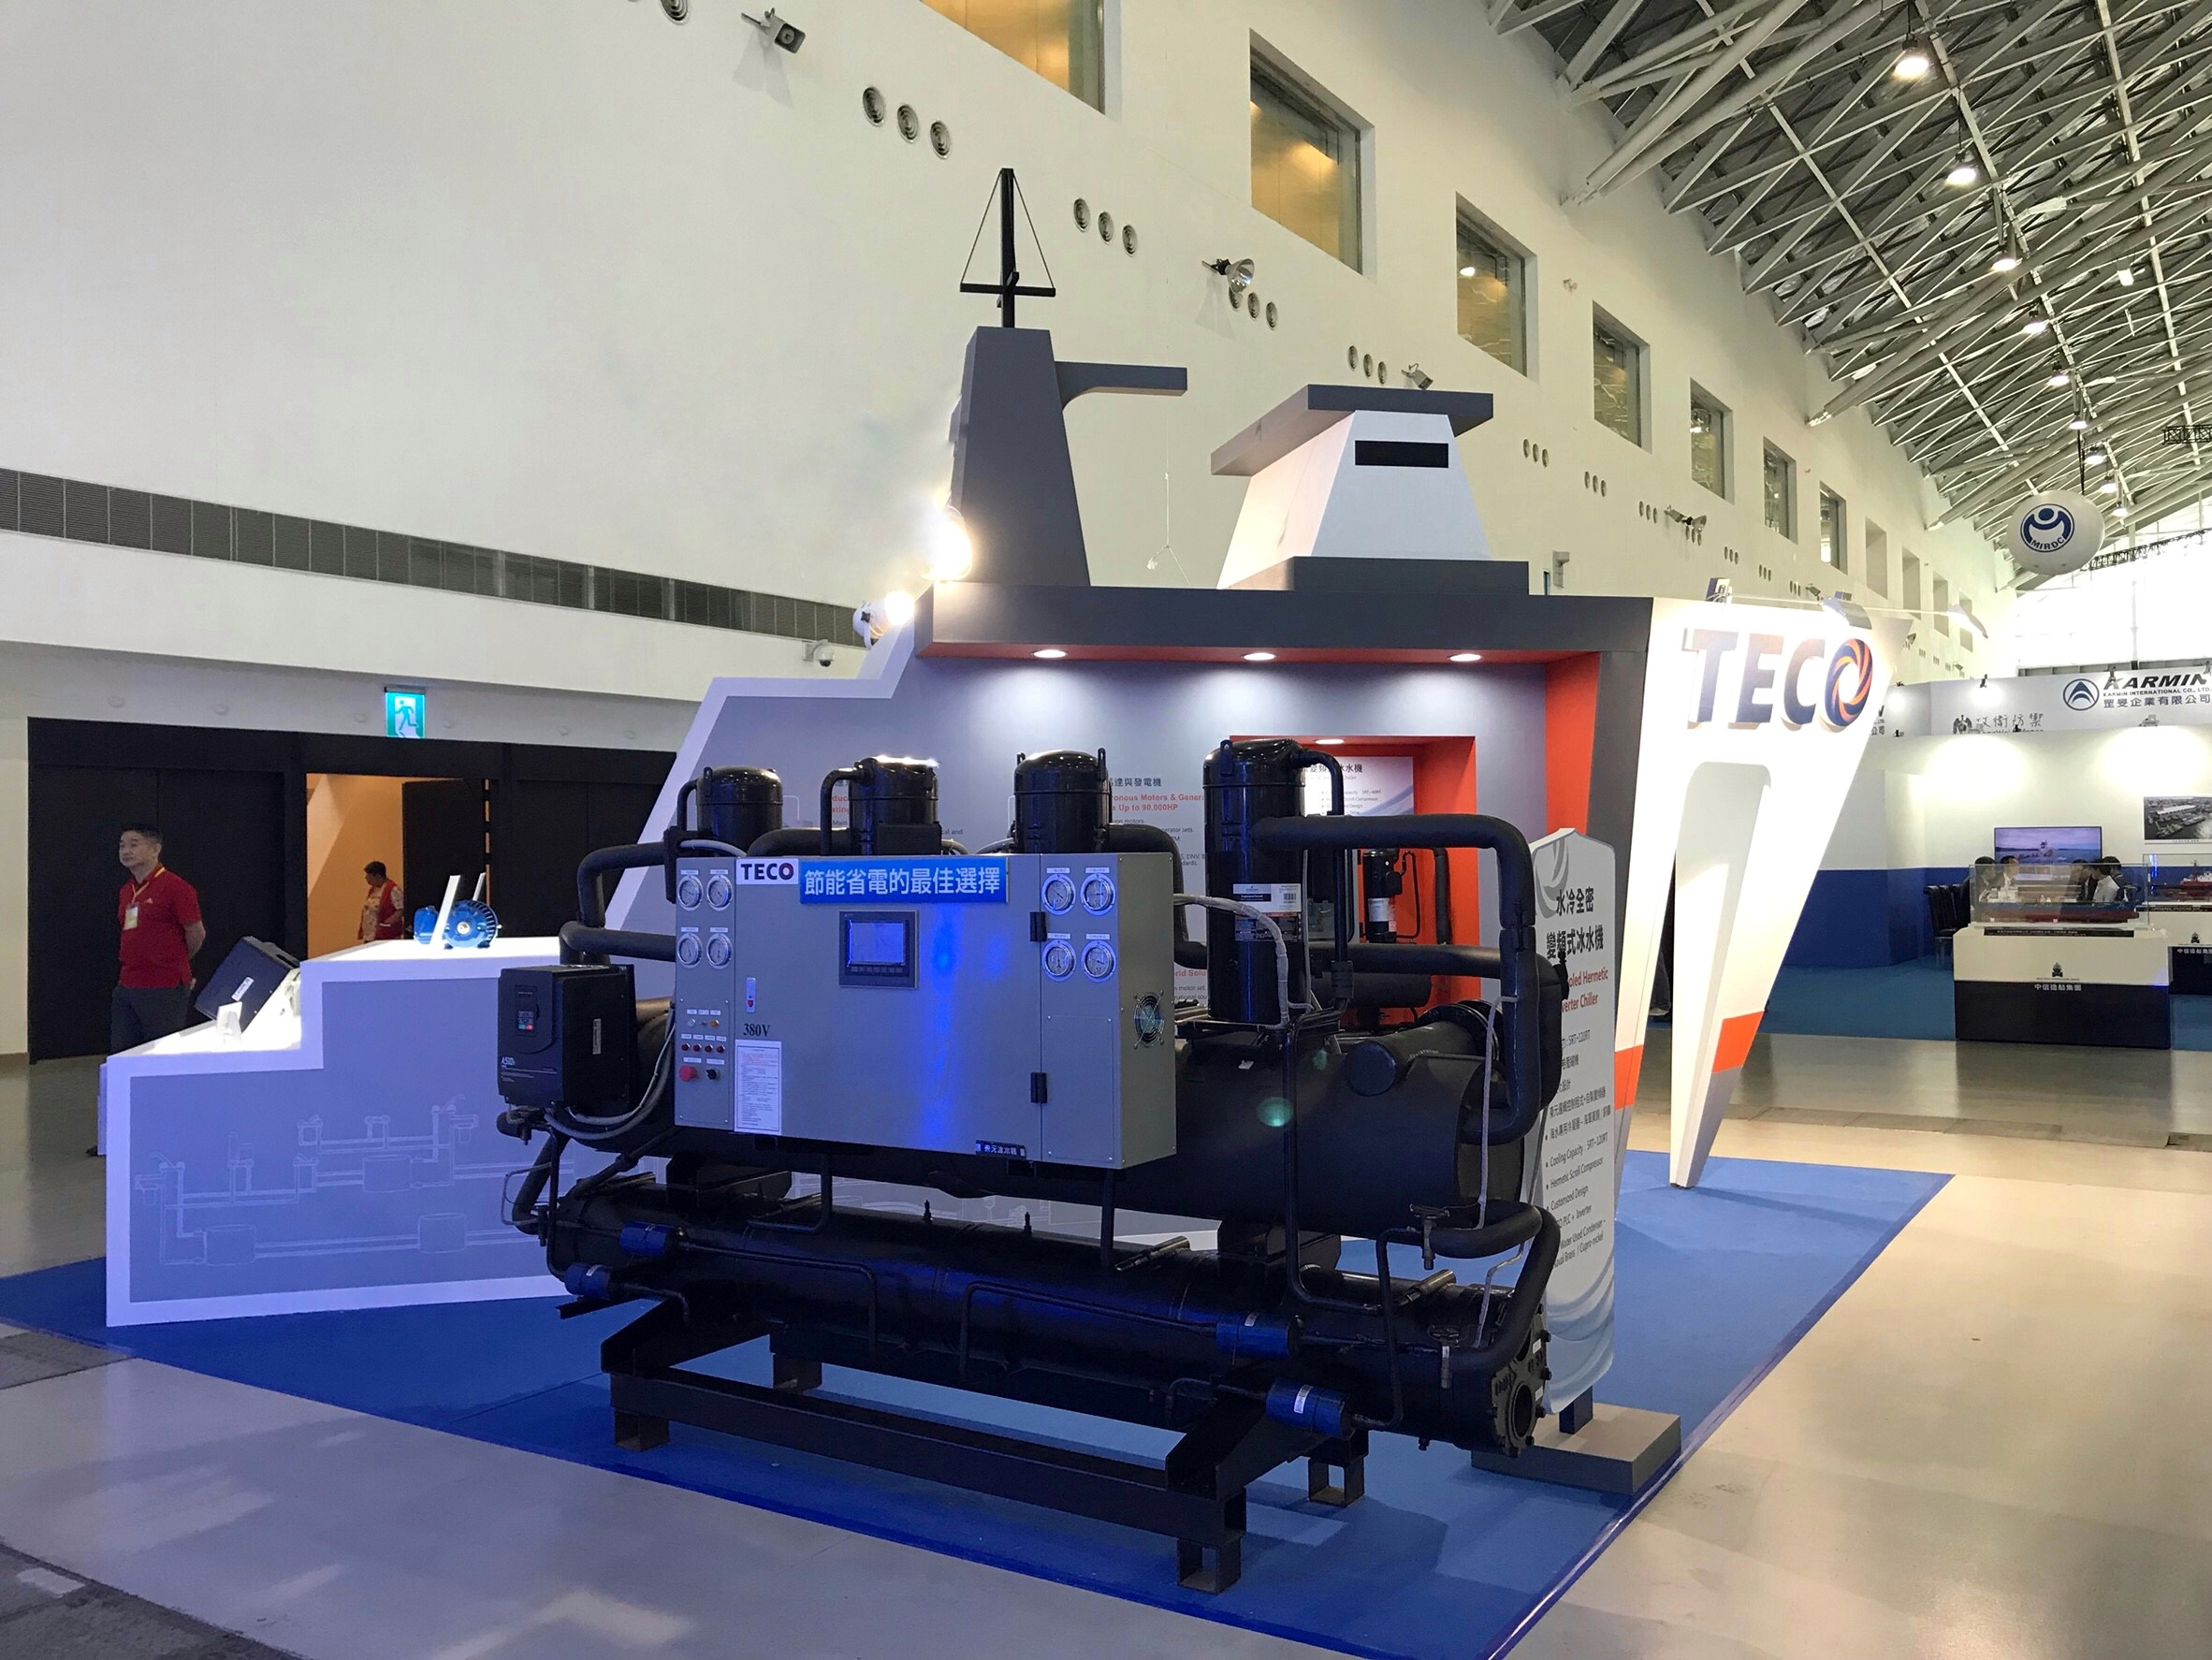 TECO Displays Shipping Motor at Kaohsiung Maritime and Defence Expo